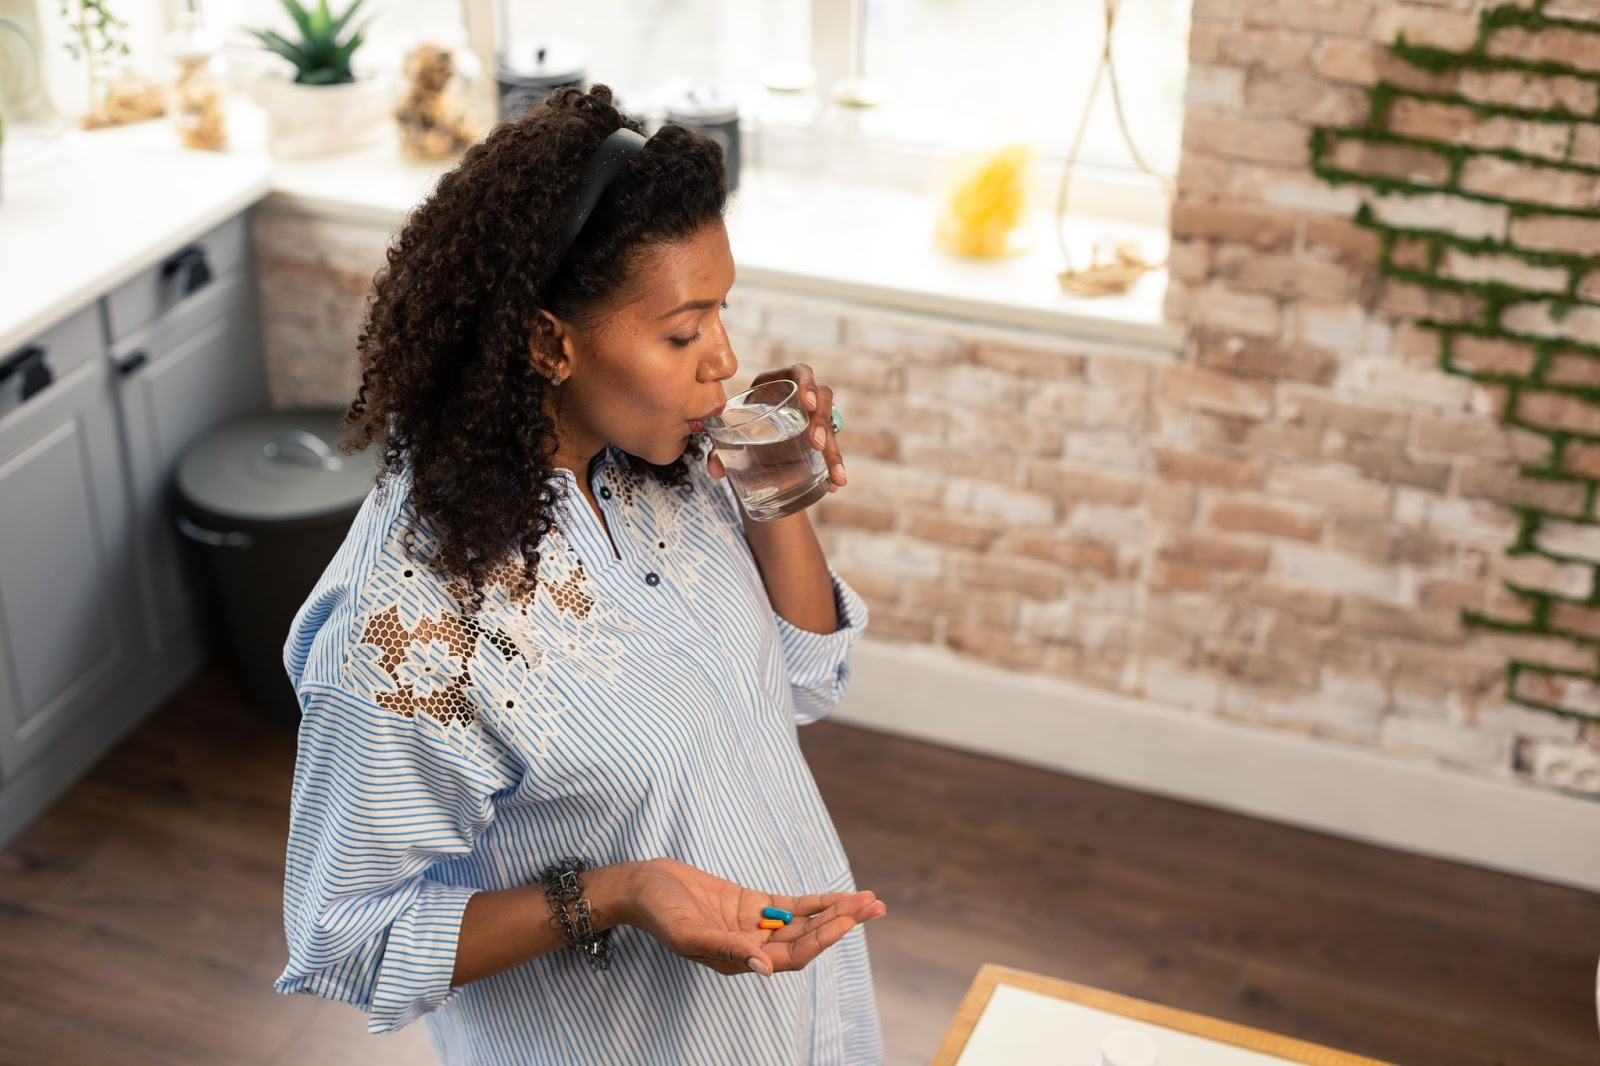 The 5 Best Prenatal Vitamins in Canada for Expectant Moms